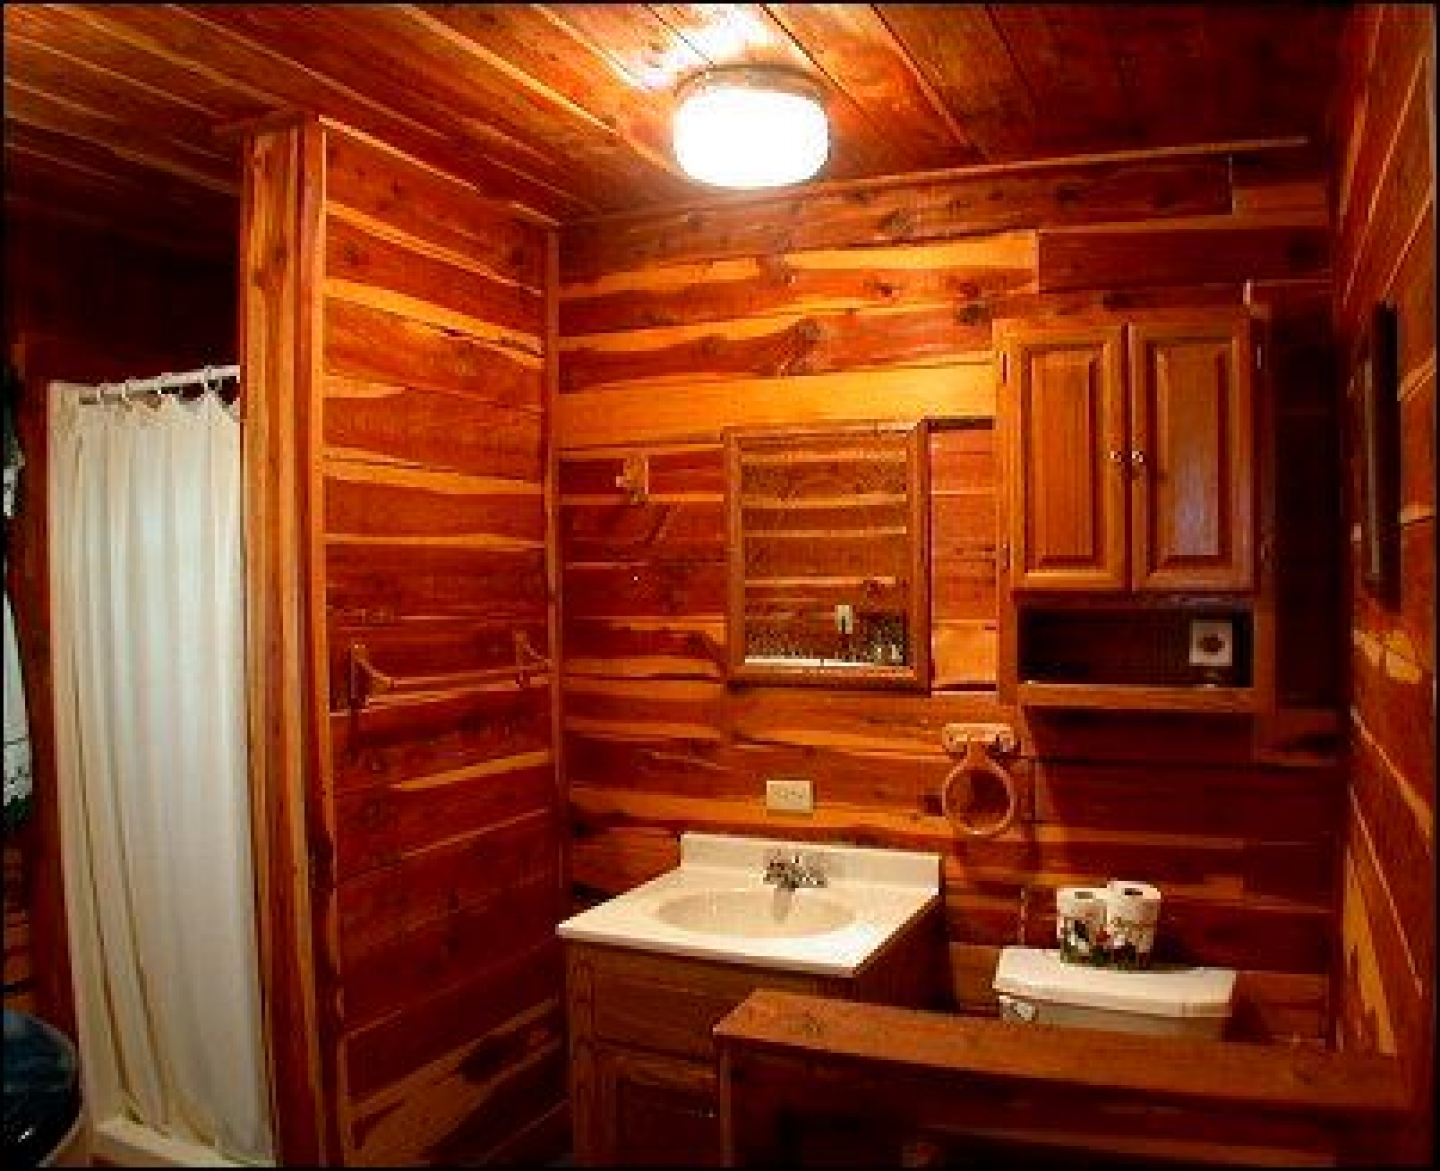 Bathroom wall bathroom wallpaper cabin cabin bathroom - Interior pictures of small log cabins ...